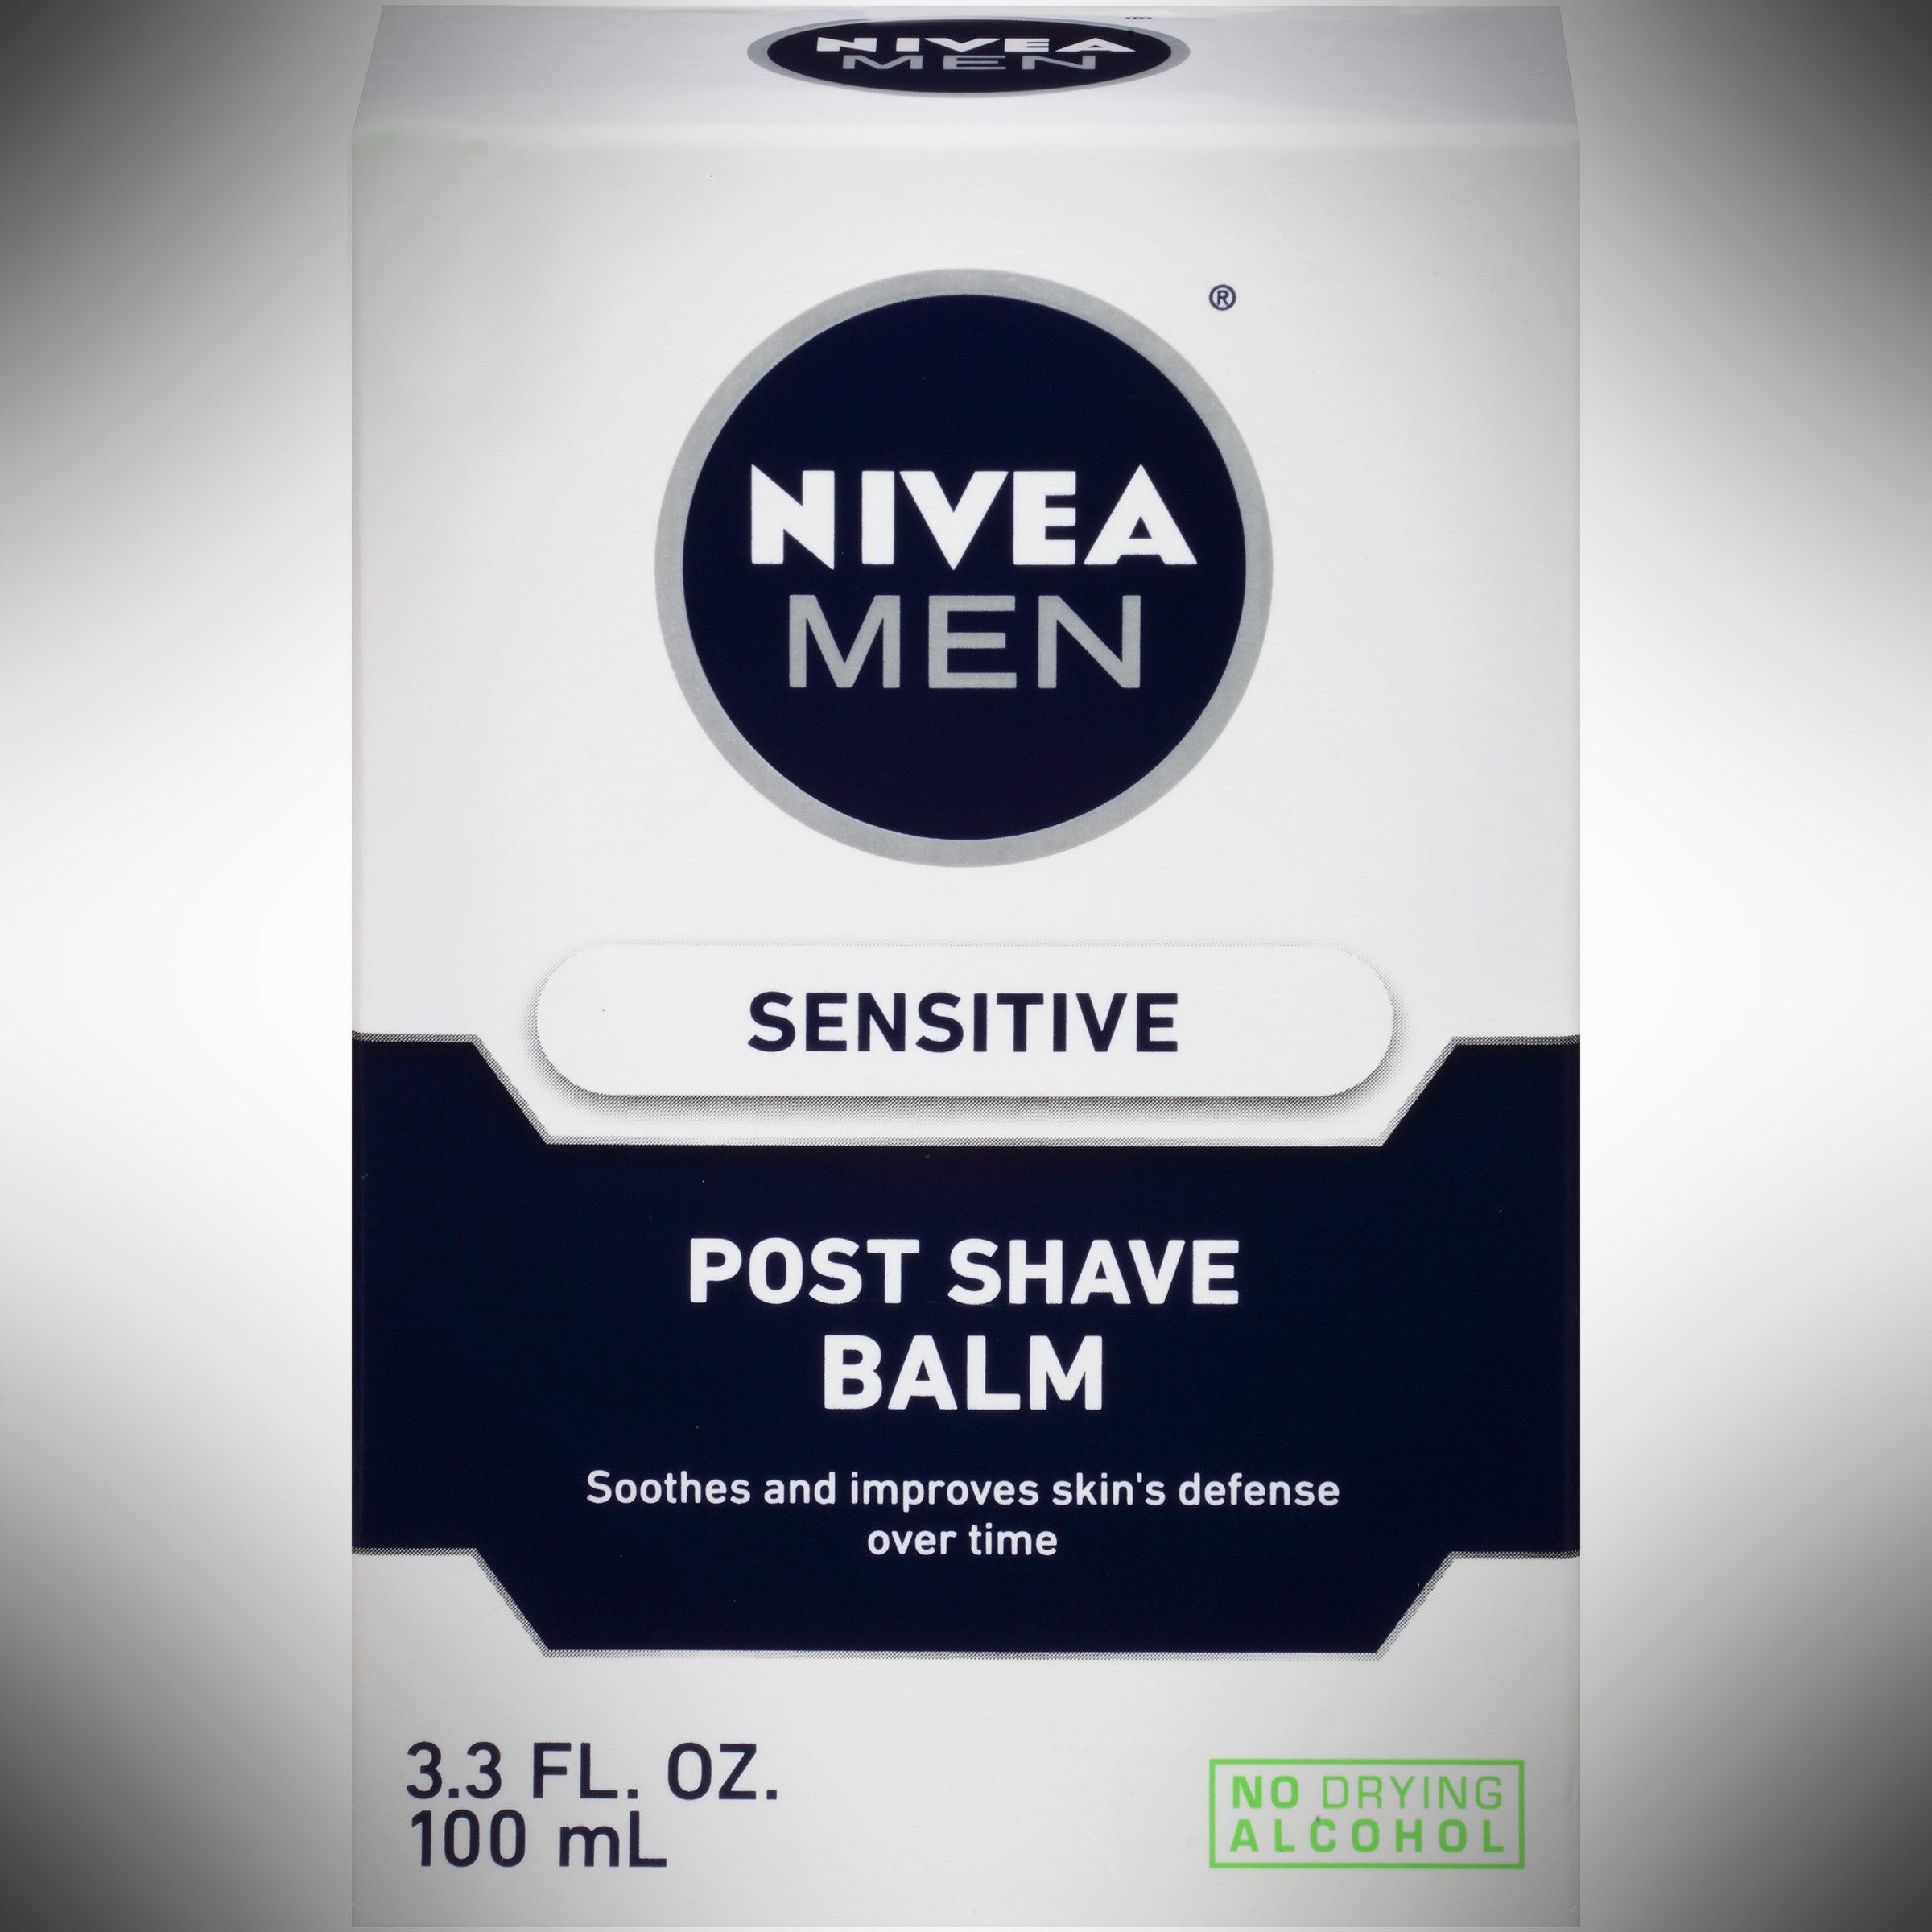 Nivea Men Sensitive Post Shave Balm – dopp kit essentials